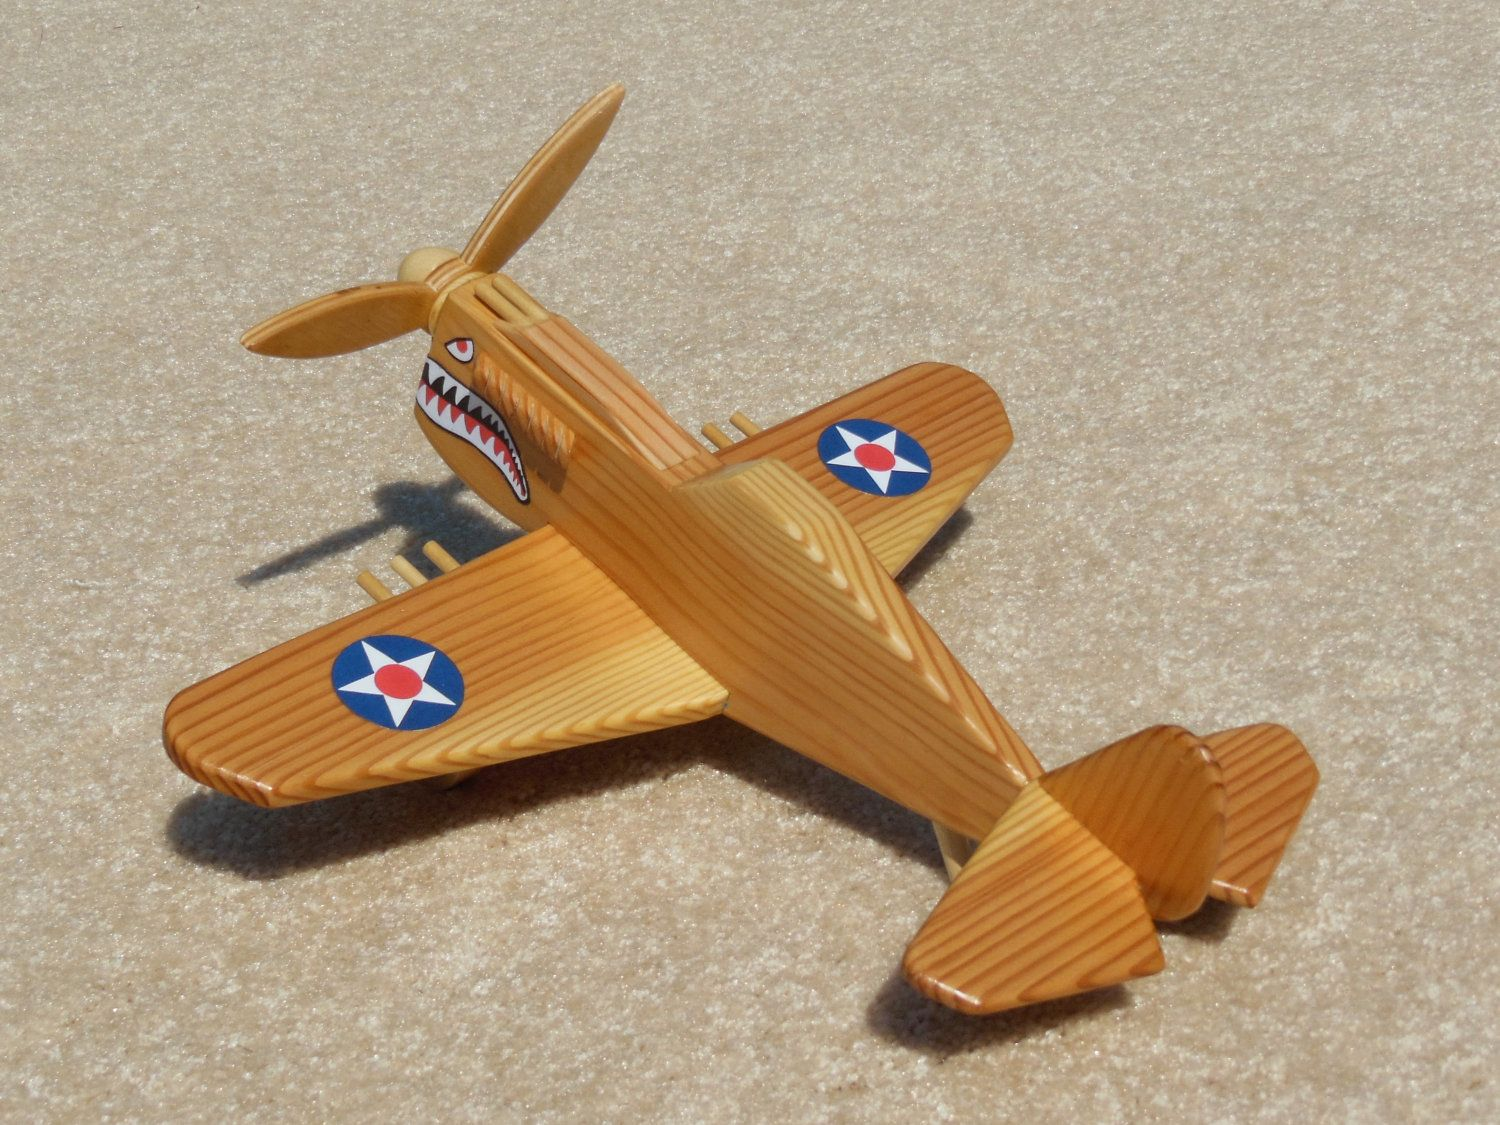 Wooden P-40 Fighter \'Flying Tiger\' Toy Plane | Pinterest | Wooden ...